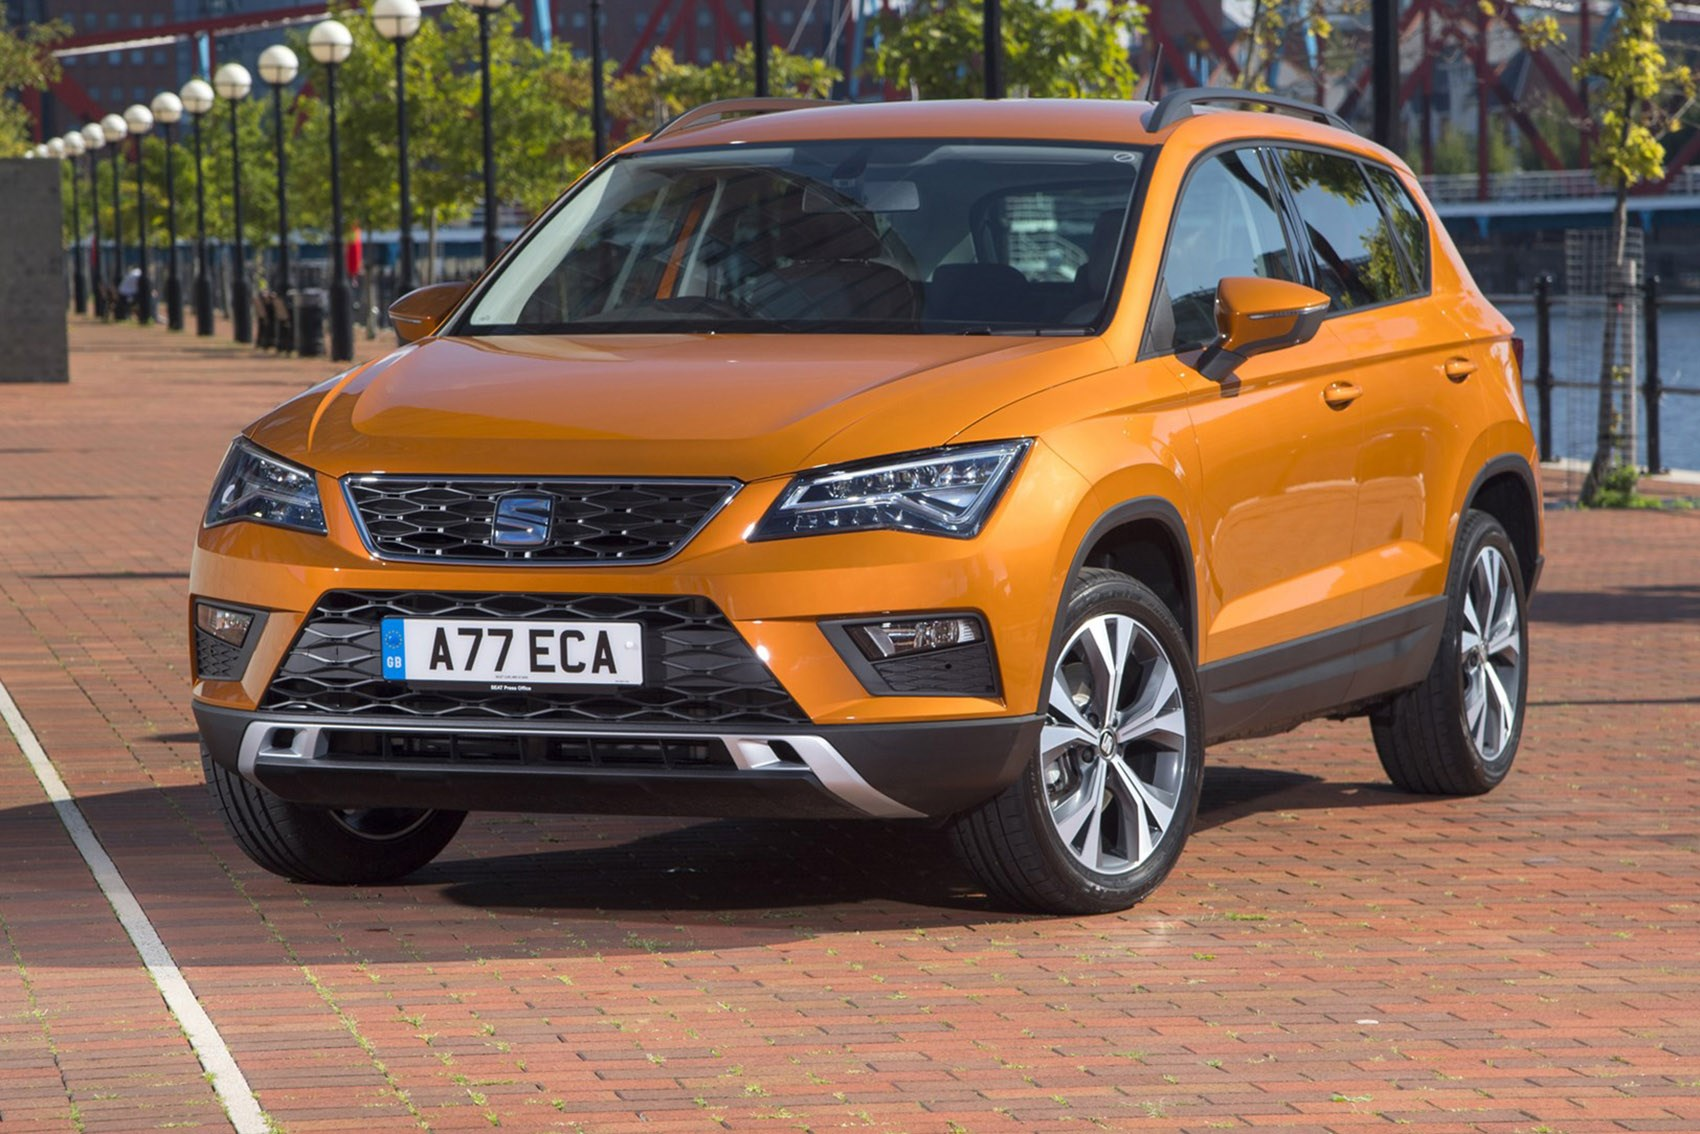 SEAT Ateca - the best family SUVs